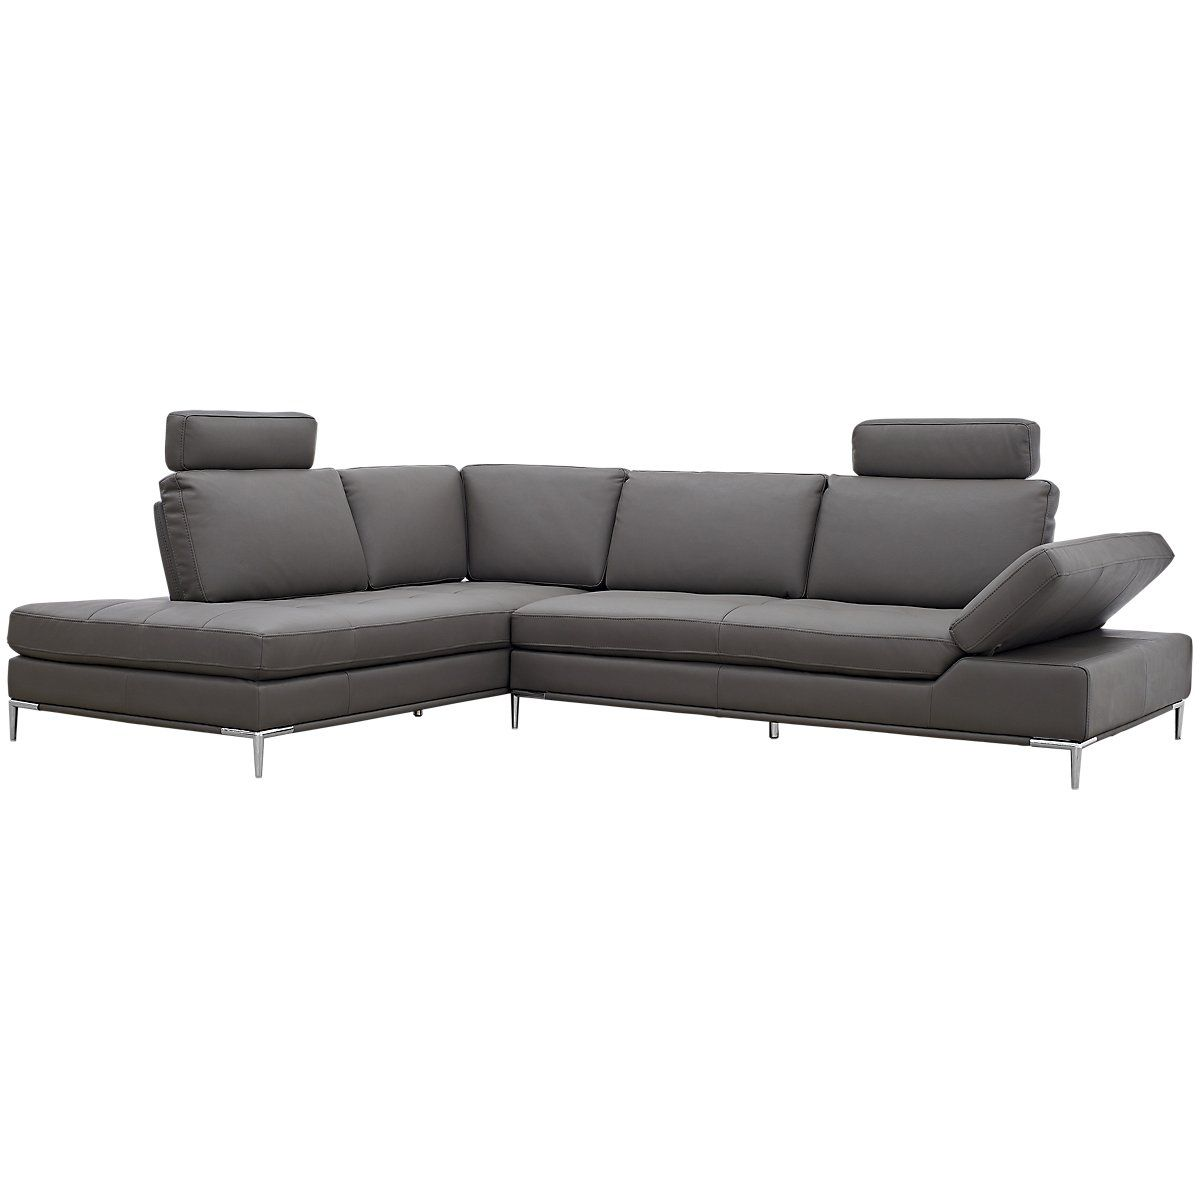 Camden Dark Gray Microfiber Left Chaise Sectional With Removable Headrest Chaise Sectional Living Room Sectional